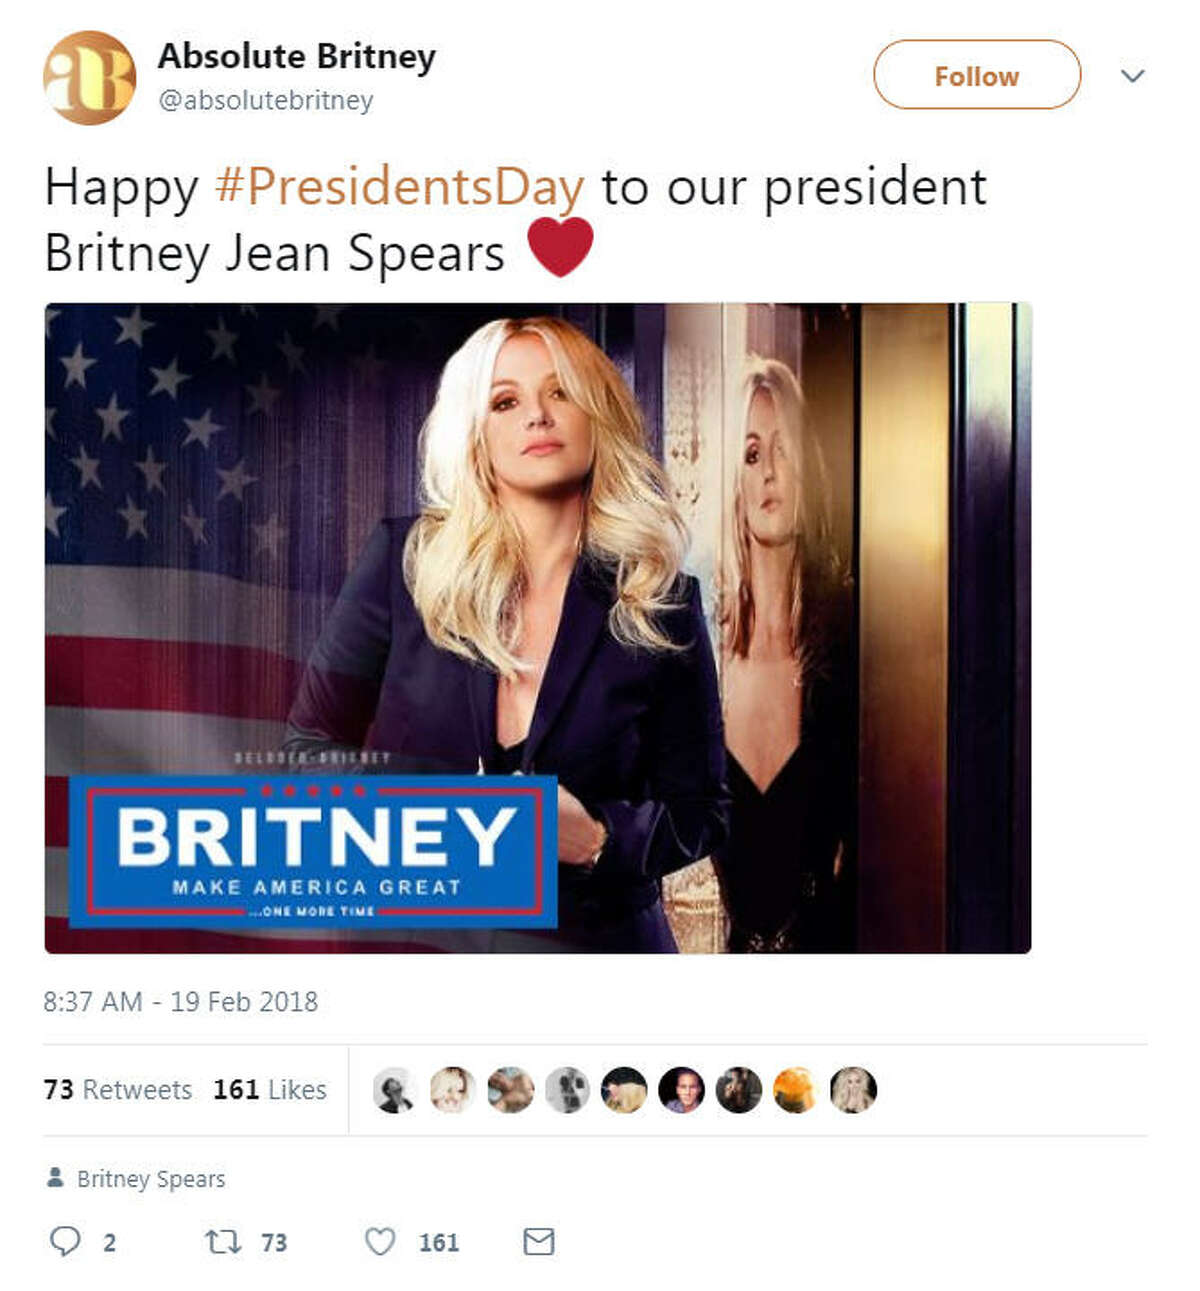 President's Day has Twitter users reminiscing about Barack Obama and imagining a world where singer Britney Spears is commander-in-chief.